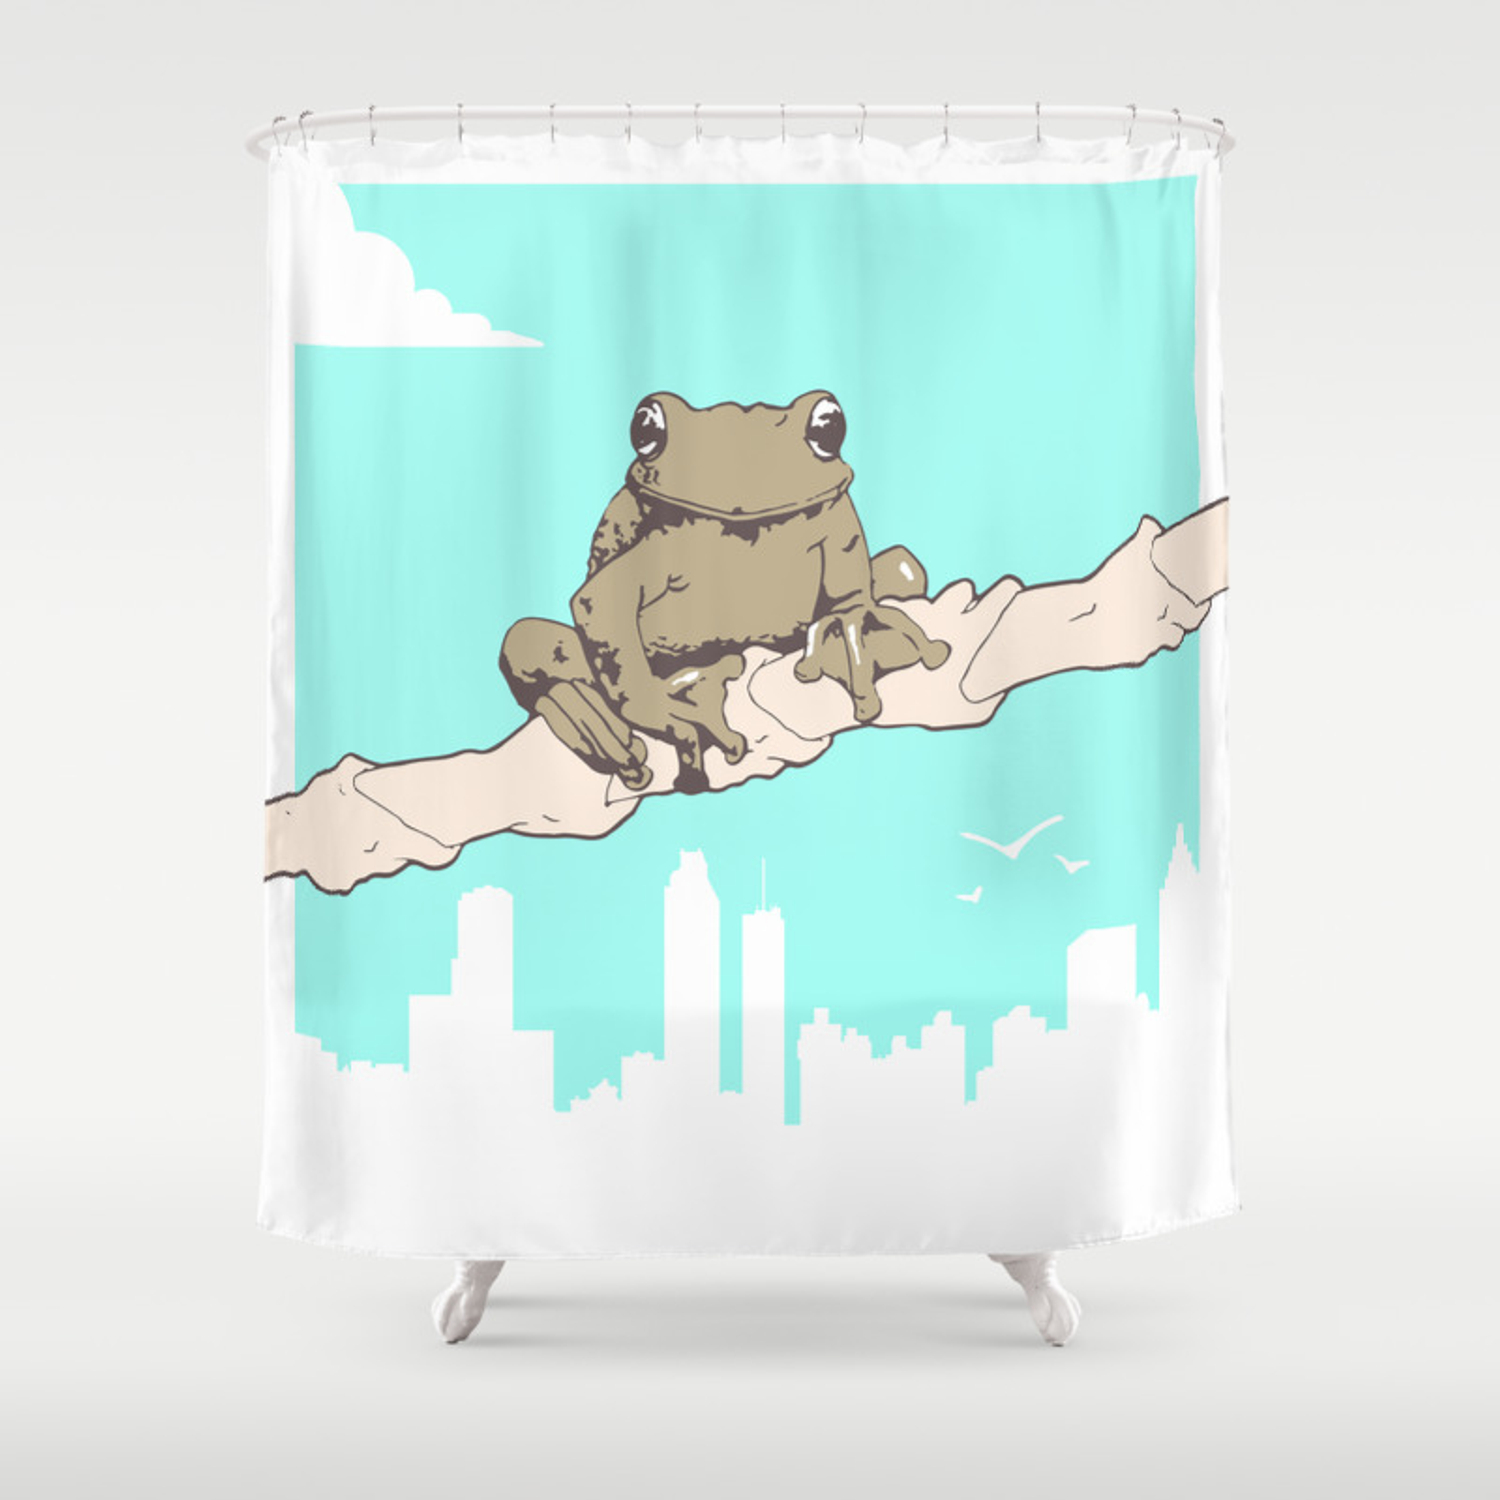 City Frog Shower Curtain